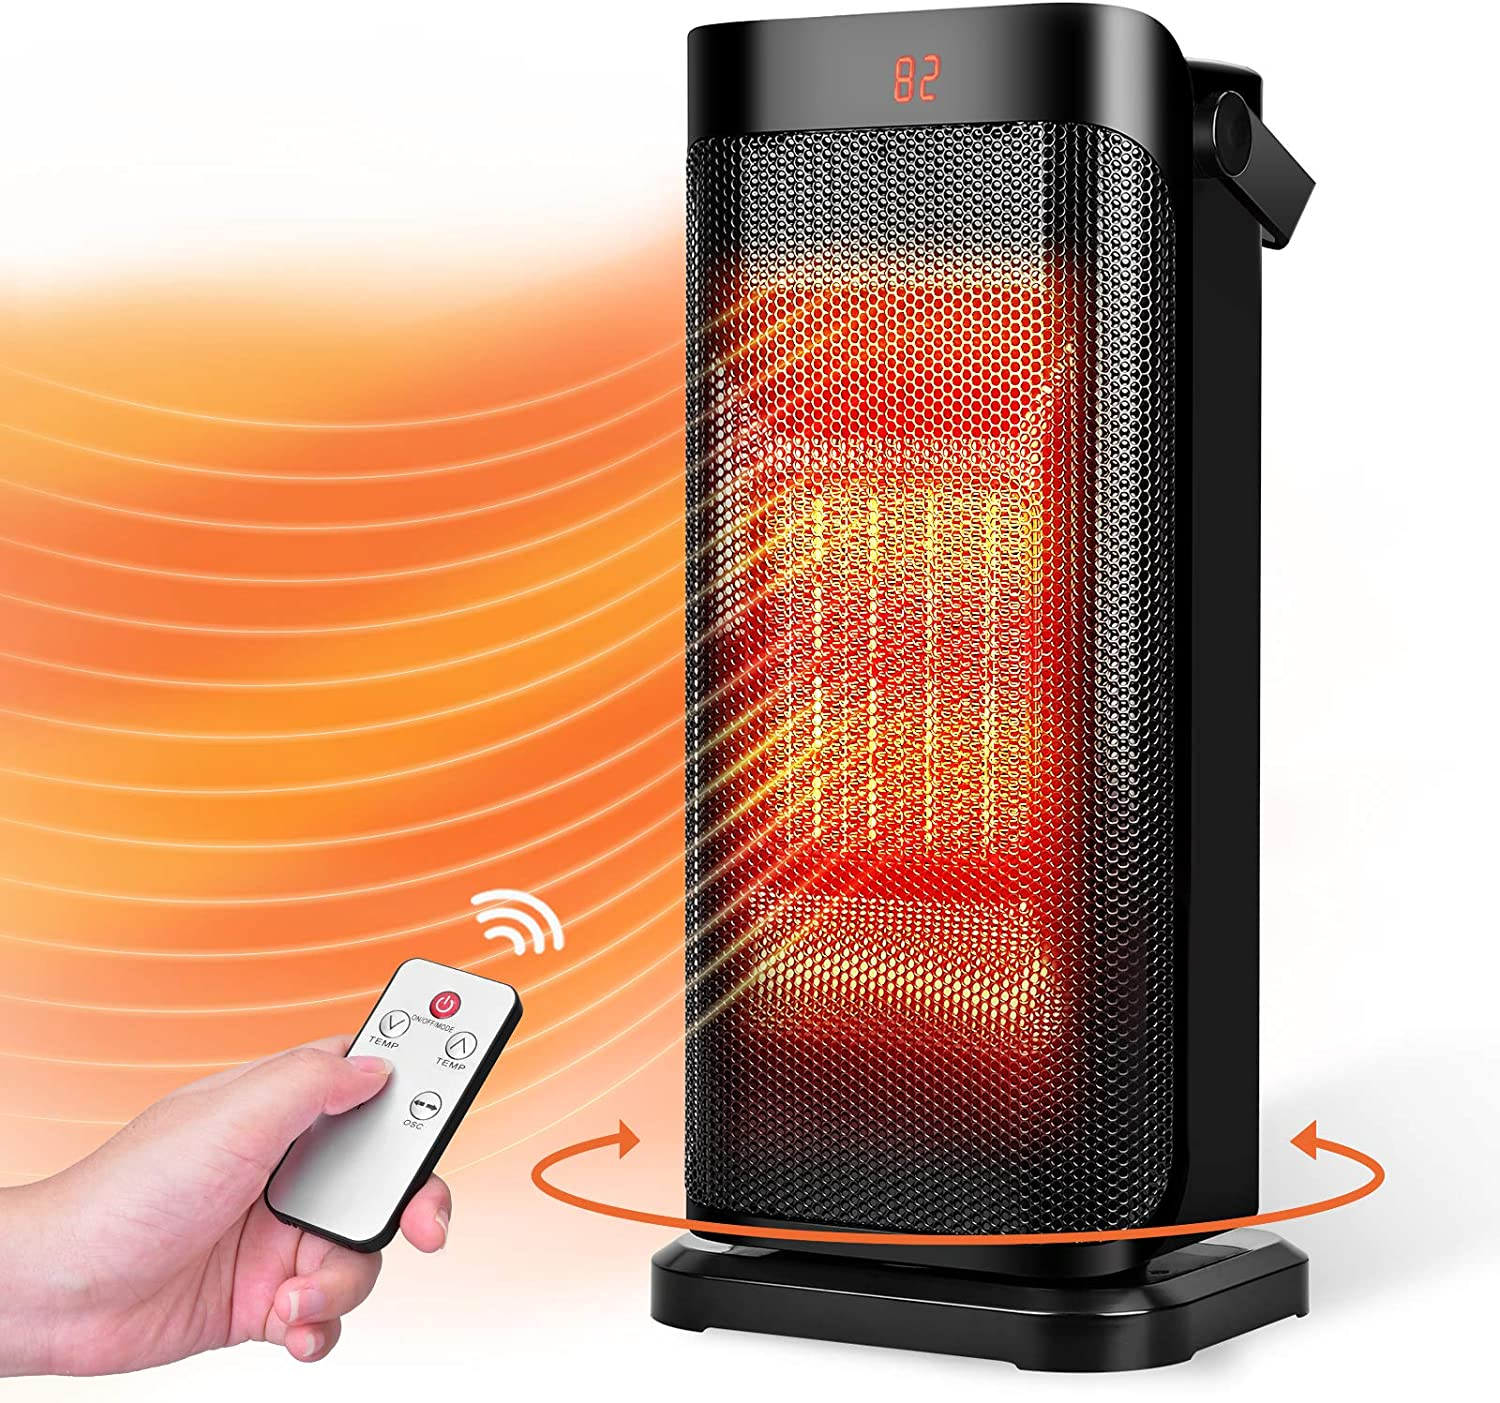 Trustech Space Heater - Fast Heating Ceramic Heater, Quiet Oscillating Heater w/Remote, Thermostat, 3 Modes, 12H Timer, Overheat & Tip-over Protection, Portable Electric Heater for Home Bedroom Office